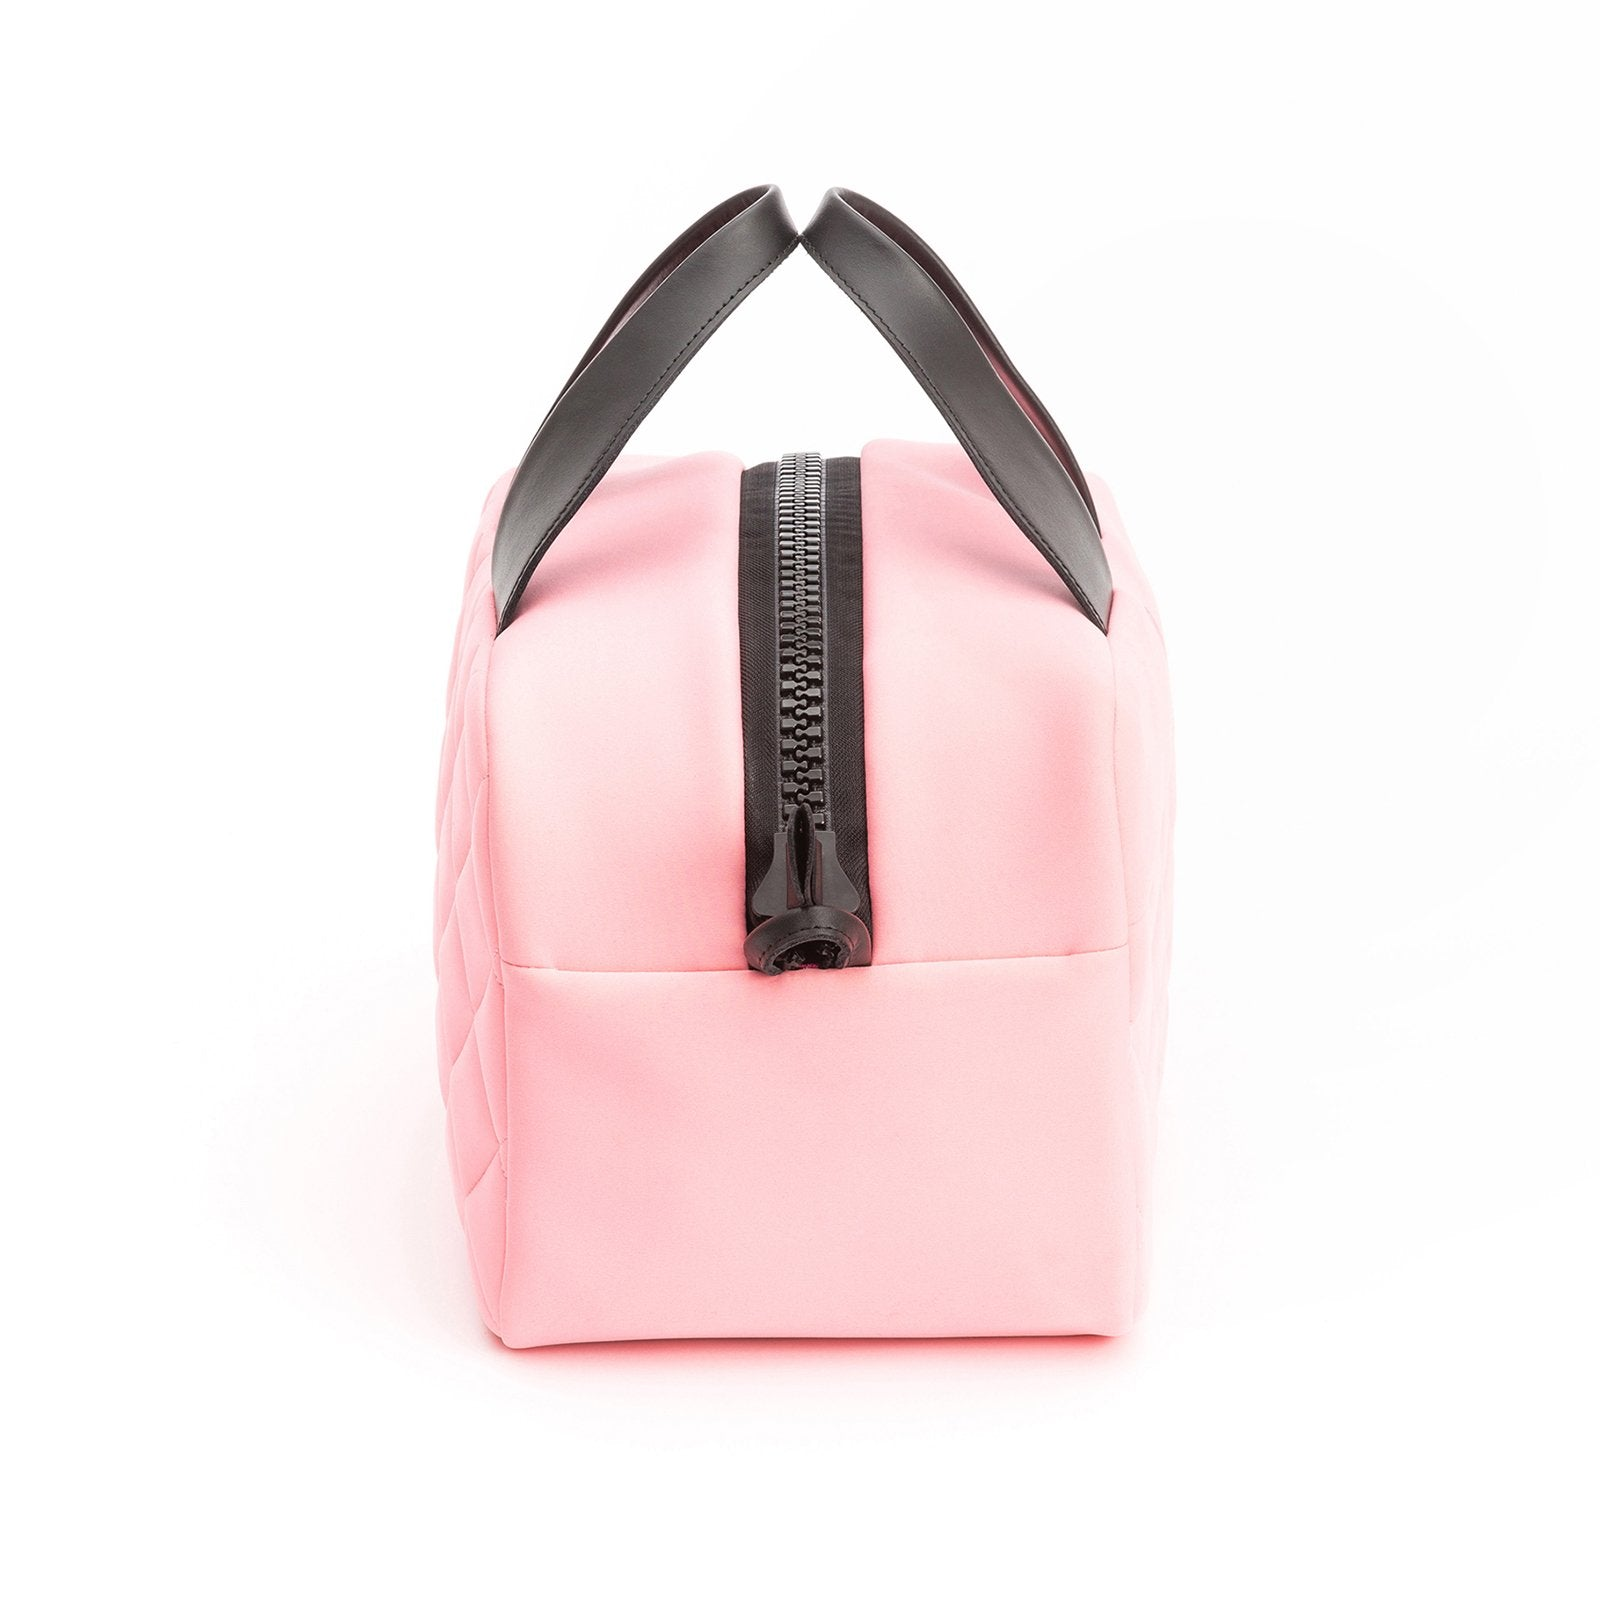 NEOPRENE BAG 34 - LIGHT PINK